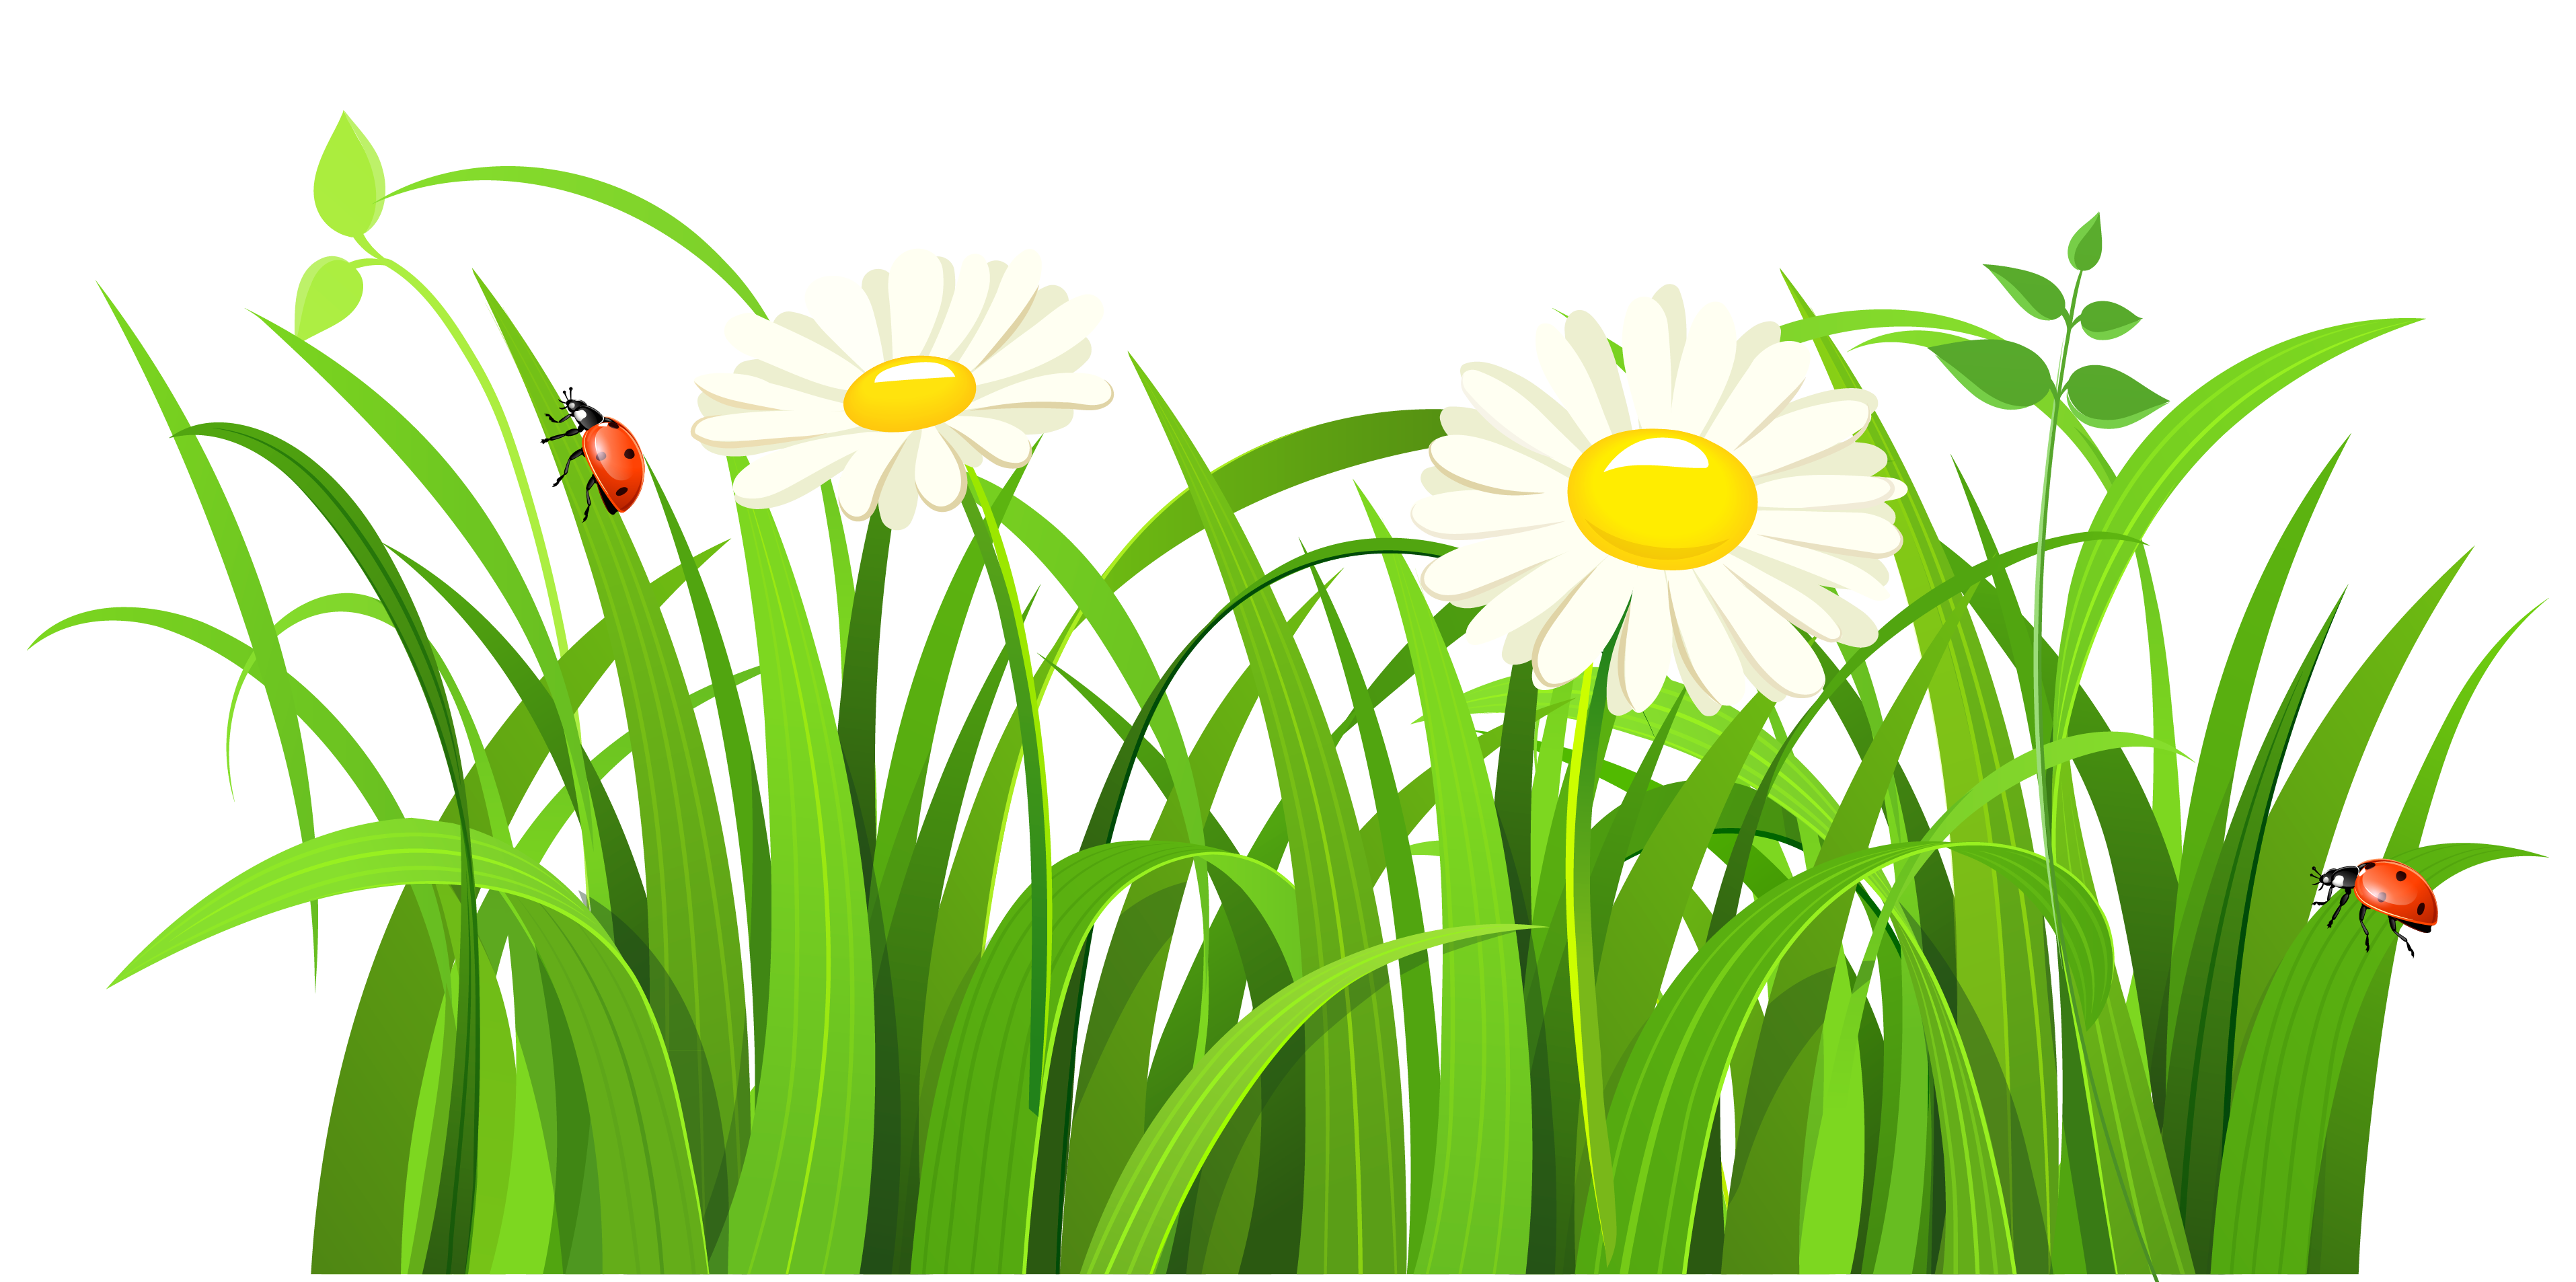 Sun and grass clipart banner download 28+ Collection of Sun And Grass Clipart | High quality, free ... banner download